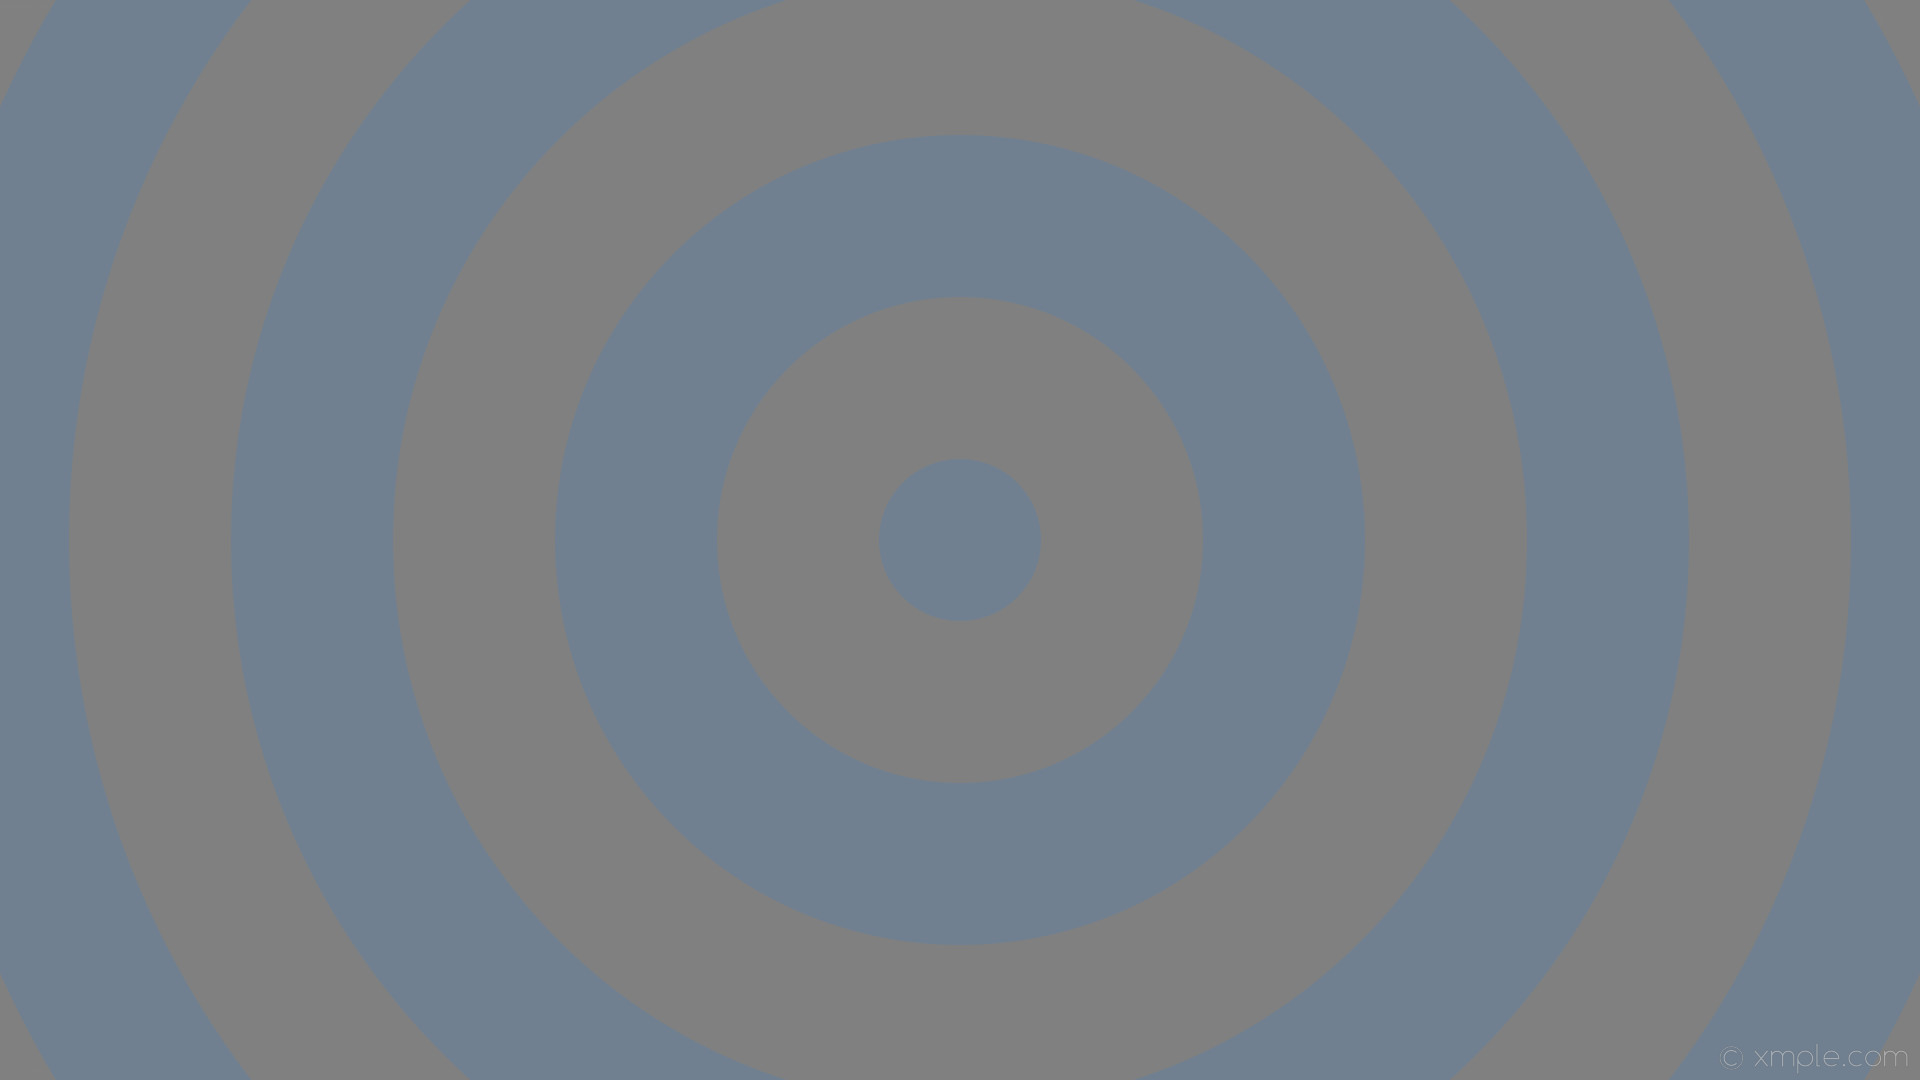 wallpaper rings grey concentric circles gray slate gray #808080 #708090  162px 50% 50